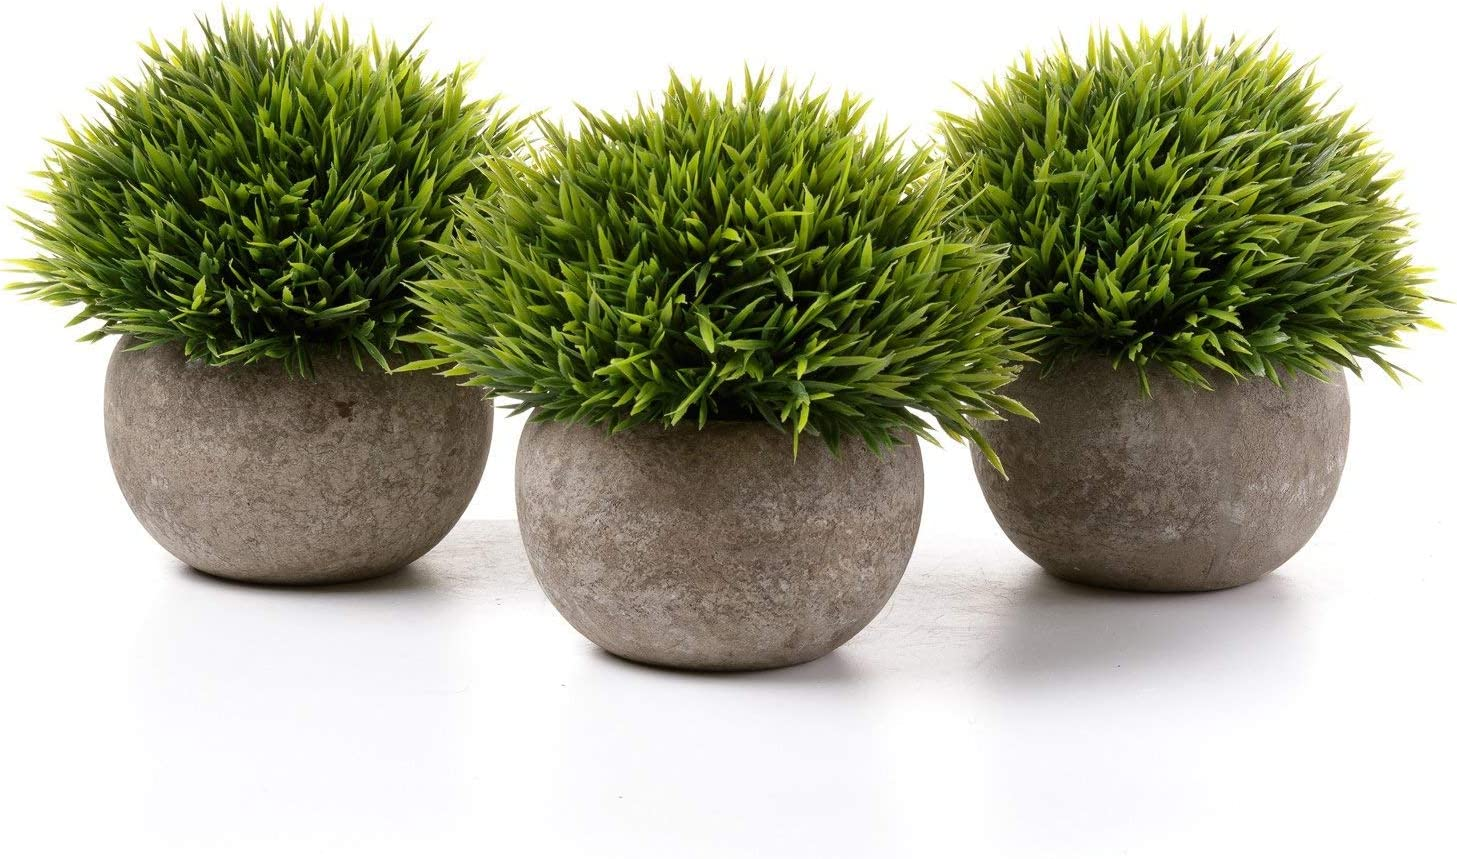 T4u 5 Inch Fake Artificial Potted Grass Plants Small Green Pack Of 3 Home And Office Decoration Desktop Windowsill Bonsai Indoor Gift For Wedding Birthday Christmas Green Amazon Ca Home Kitchen